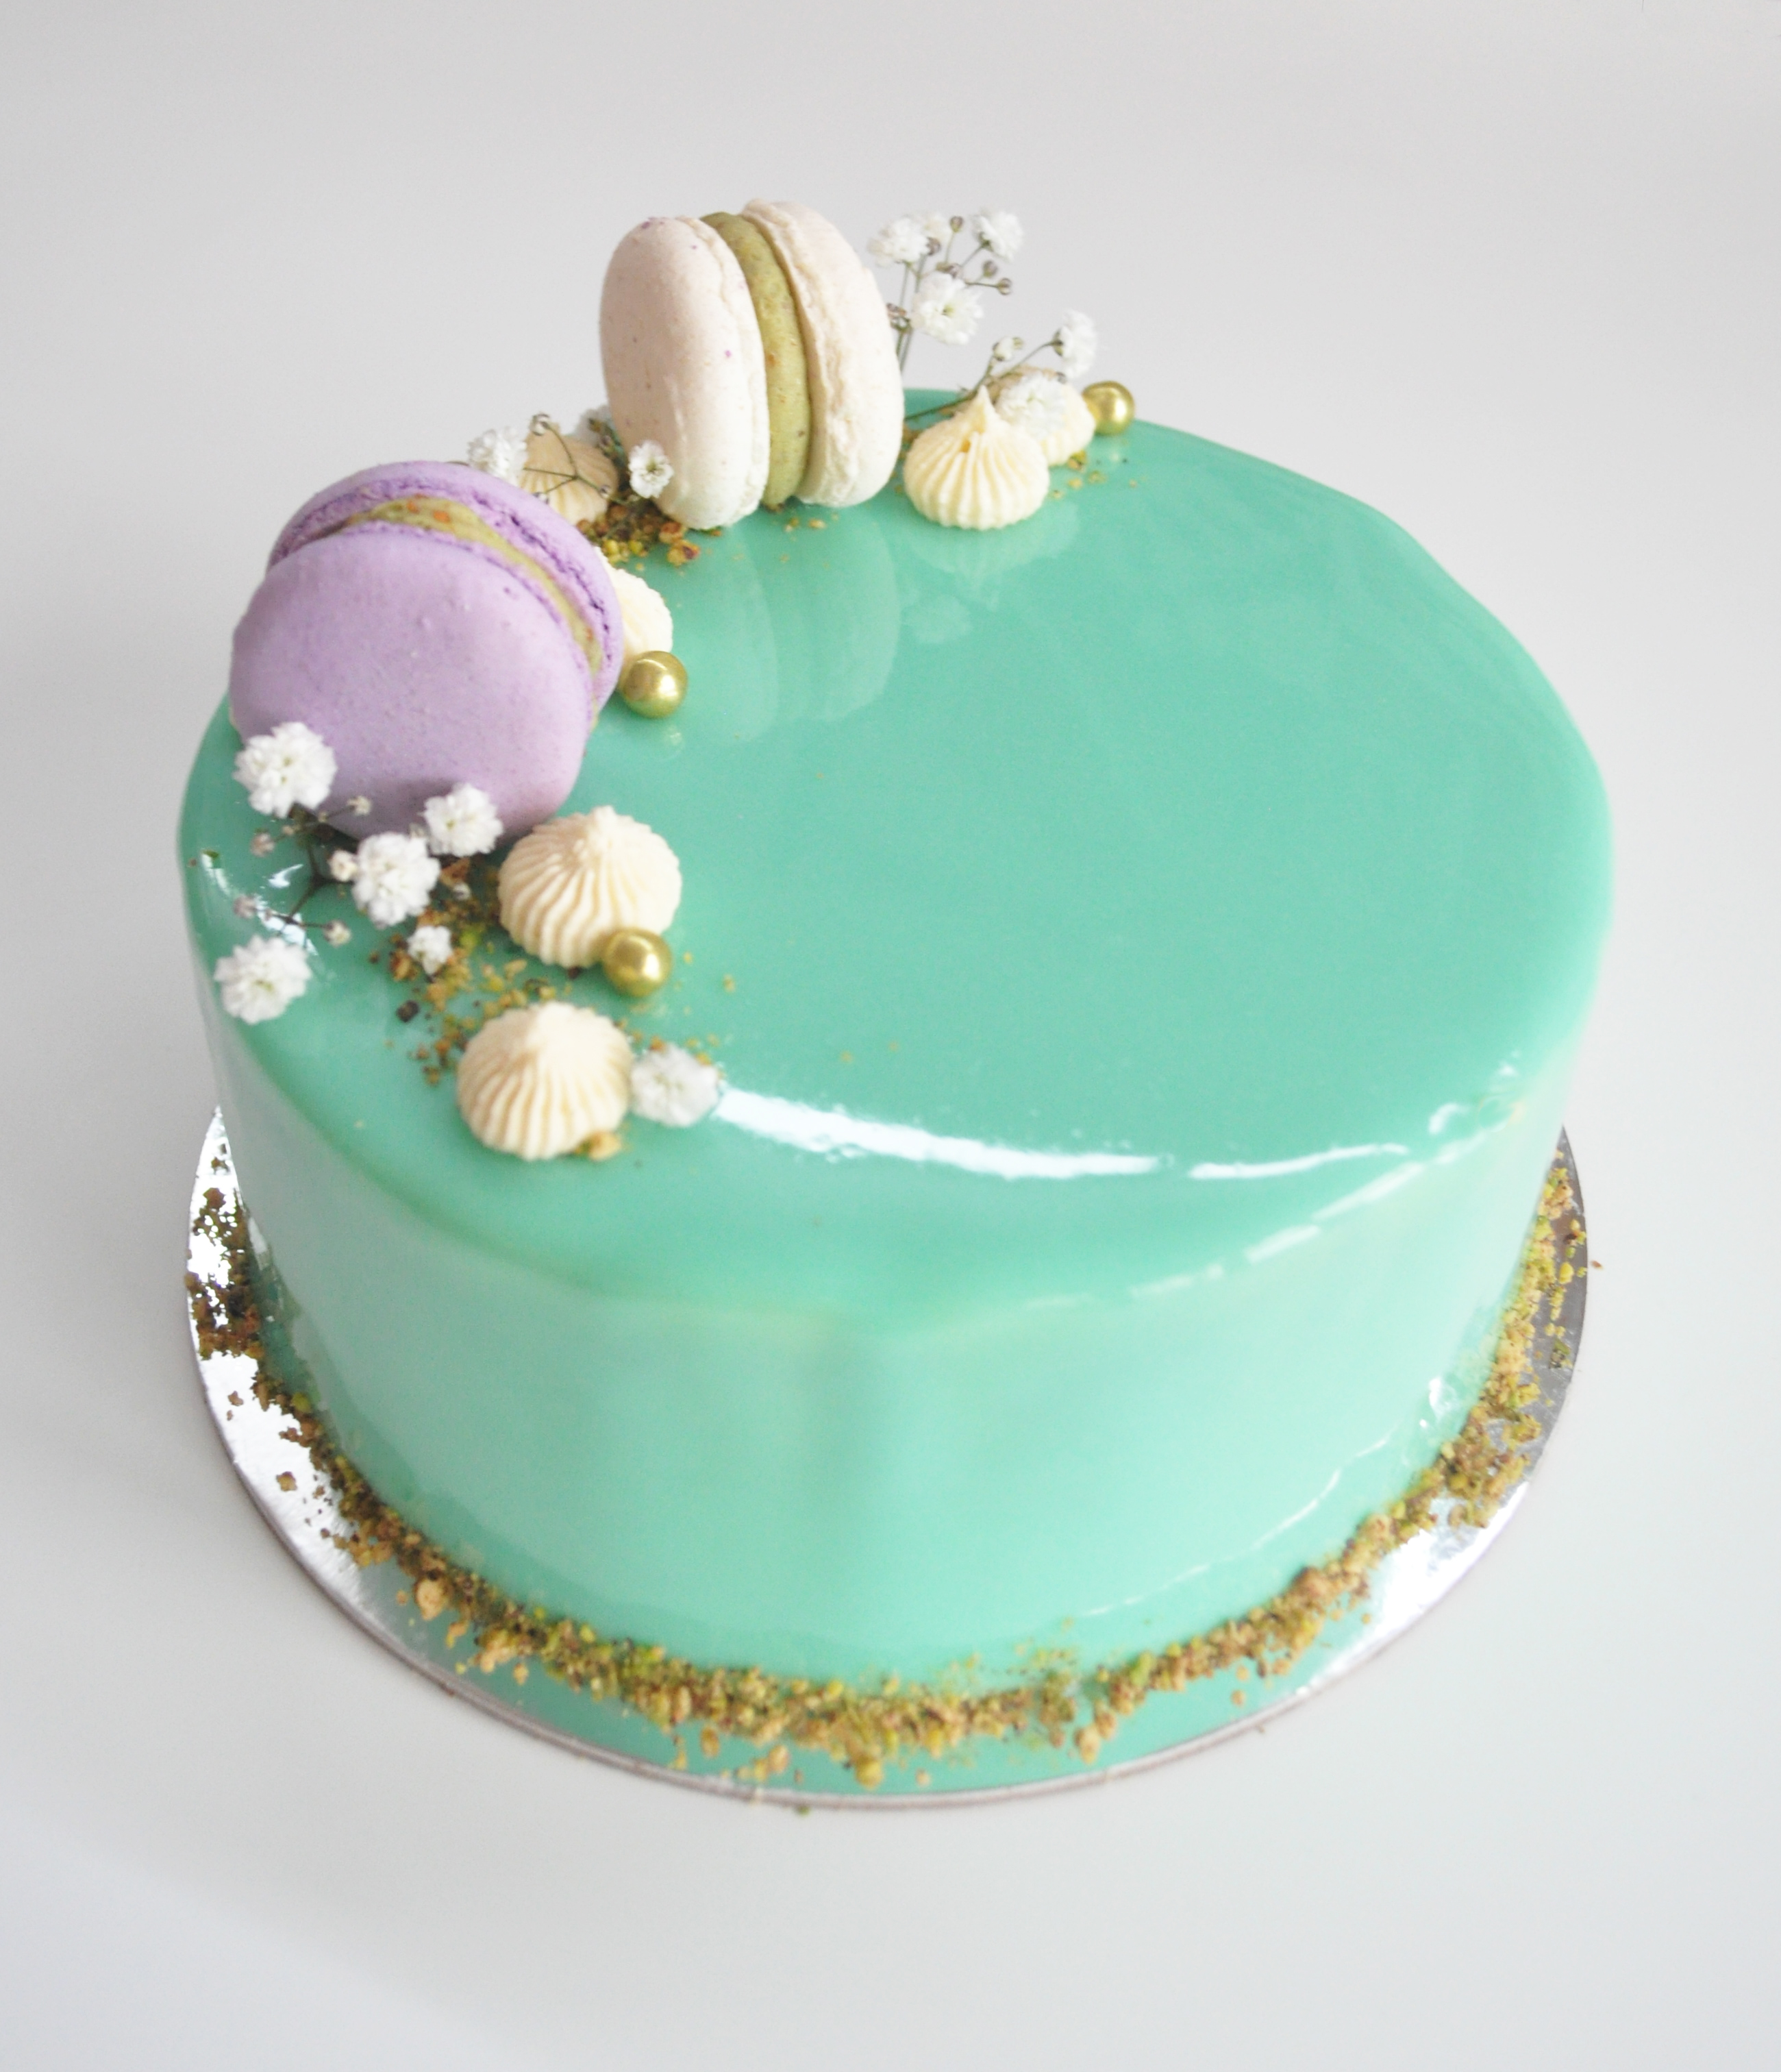 Occasion cakes desserts mad about cakes for Mirror glaze cake